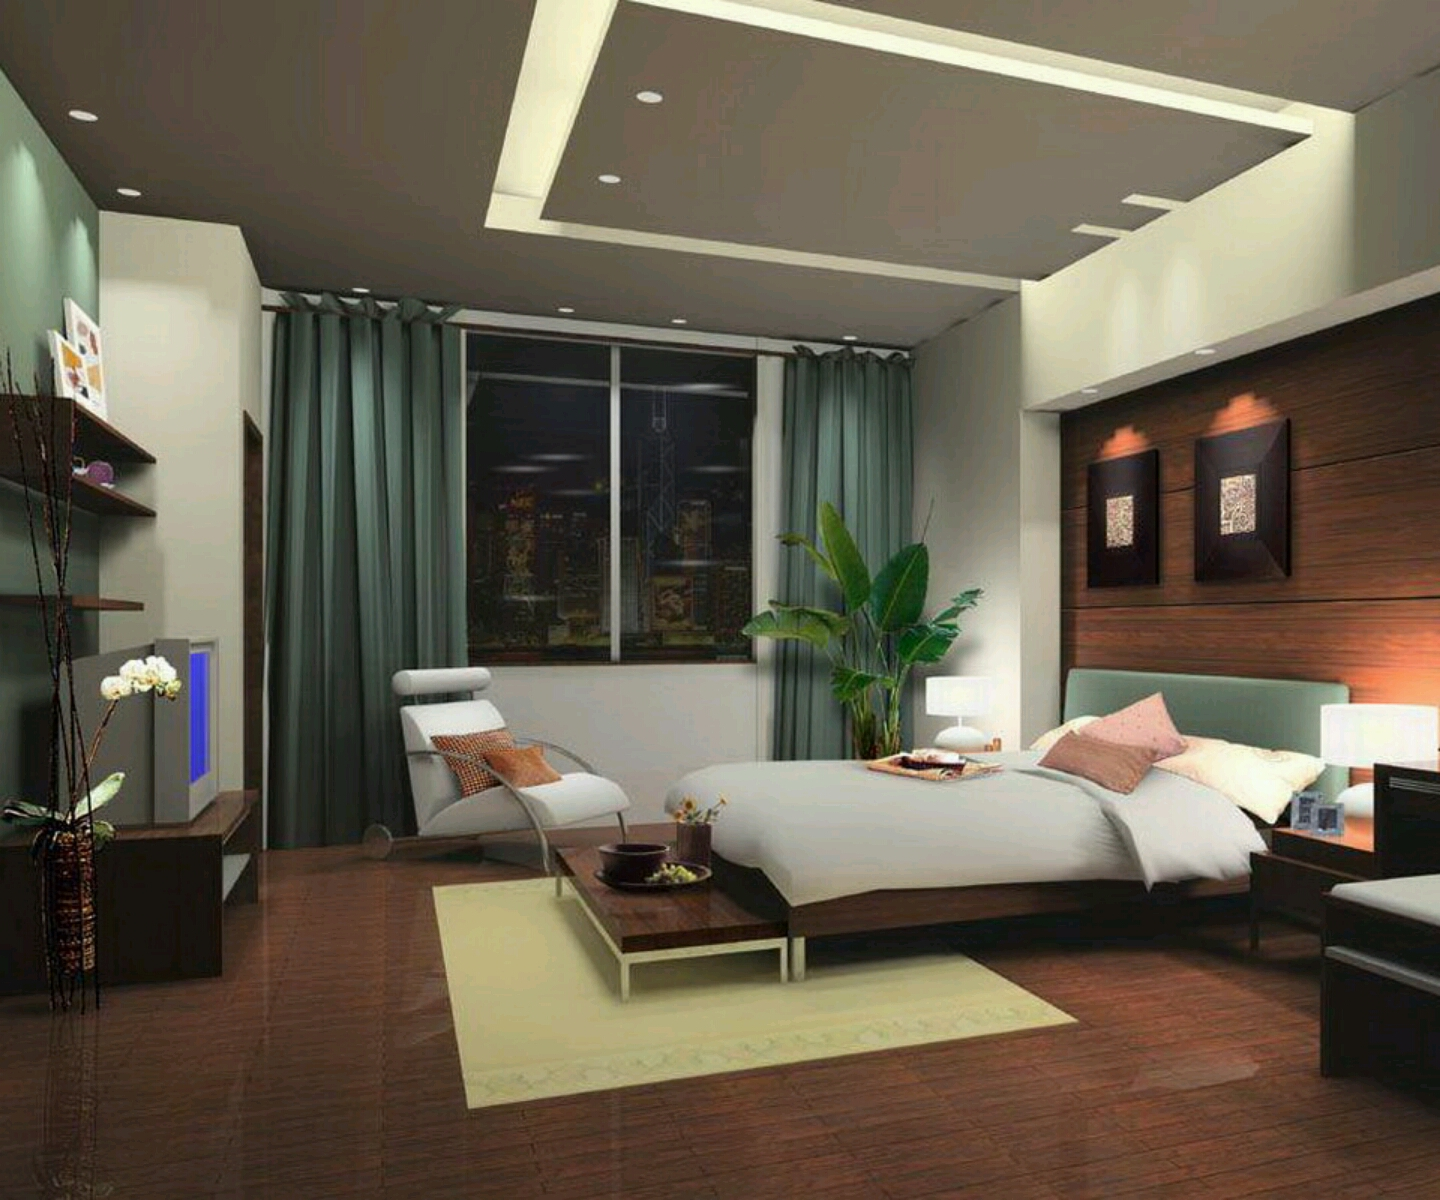 New home designs latest modern bedrooms designs best ideas for New house design ideas